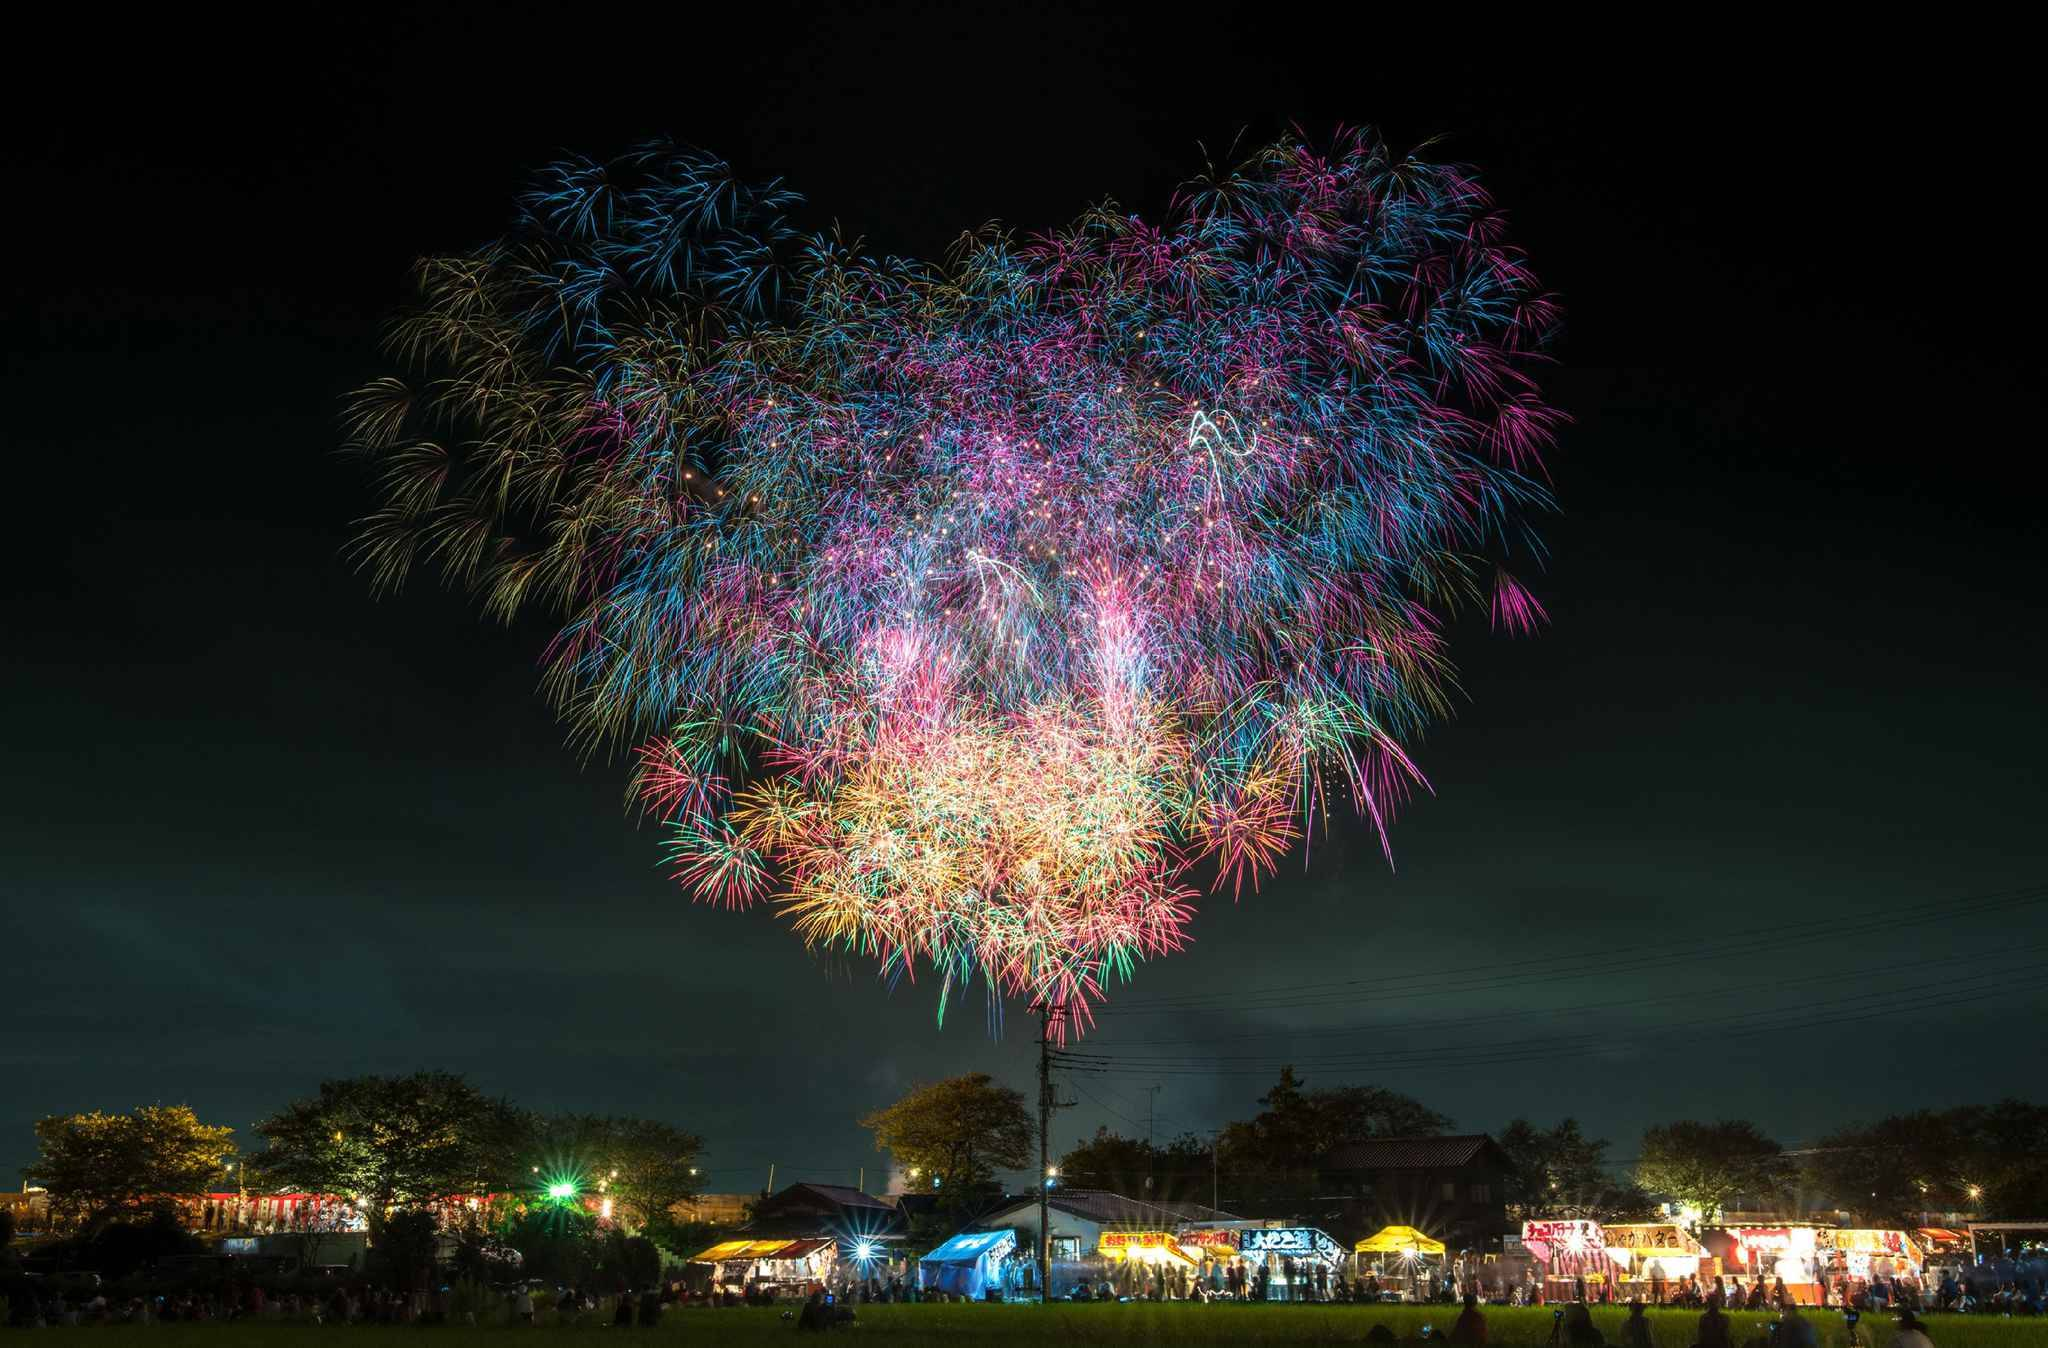 PIC BY MAKOTO IGARI / CATERS - (Pictured: Tsuchiura National Fireworks Competition, Tsuchiura City, Ibaraki Prefecture) - This incredible kaleidoscopic images showcase the sheer beauty of the mammoth firework displays that take place across Japan every summer. Photographer Makoto Igari has spent the last three years diligently pursuing such firework festivals across his homeland, with the Japanese themselves calling fireworks hanabi, meaning fire flower. Included in 32-year-old Makotos works were the likes of rainbow-coloured bursts, exploding over vast crowds; displays bright enough to illuminate the cities below; and works of incredible symmetry. Each year, local governments in Japan throw around 7,000 festivals, called Hanabi Taikai.